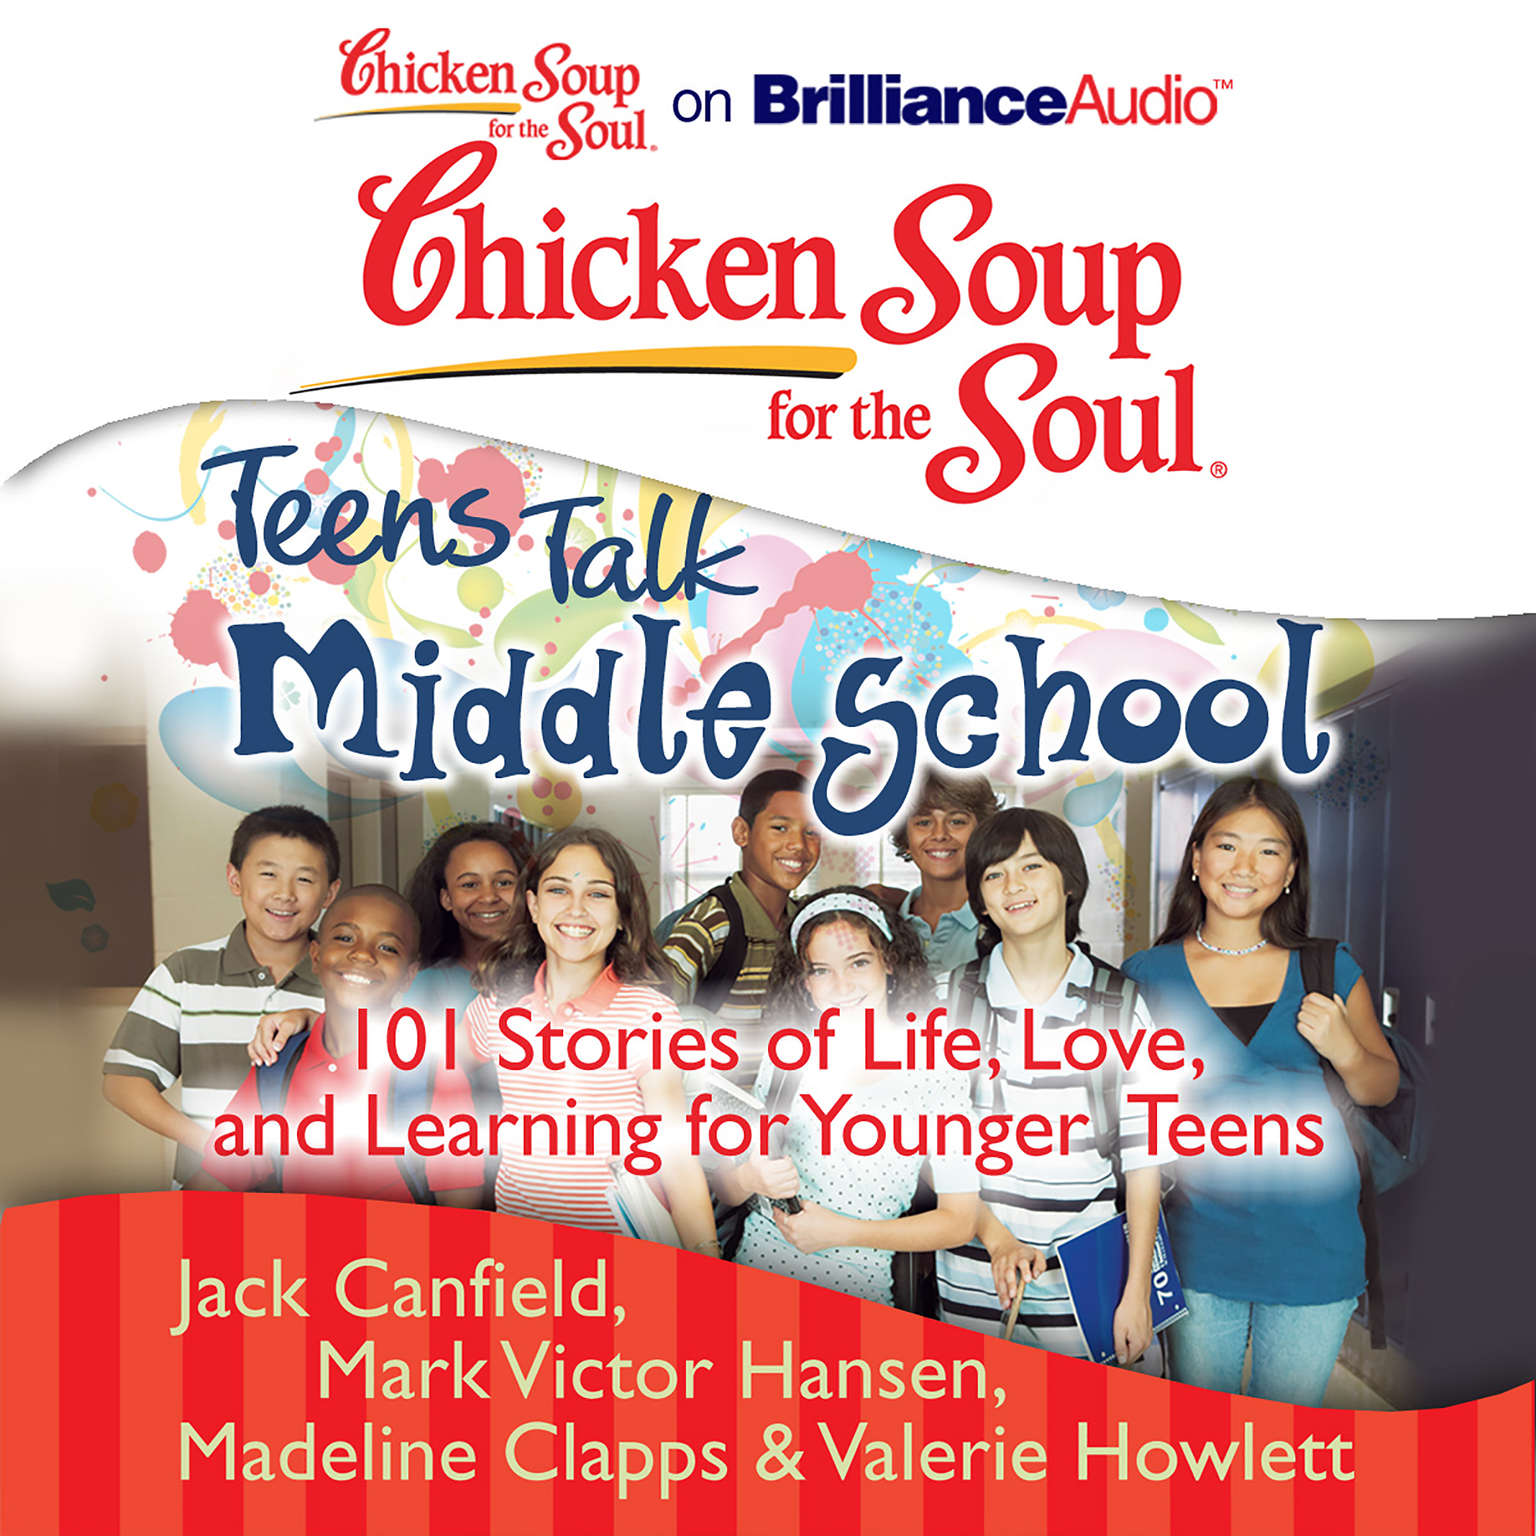 Printable Chicken Soup for the Soul: Teens Talk Middle School: 101 Stories of Life, Love, and Learning for Younger Teens Audiobook Cover Art